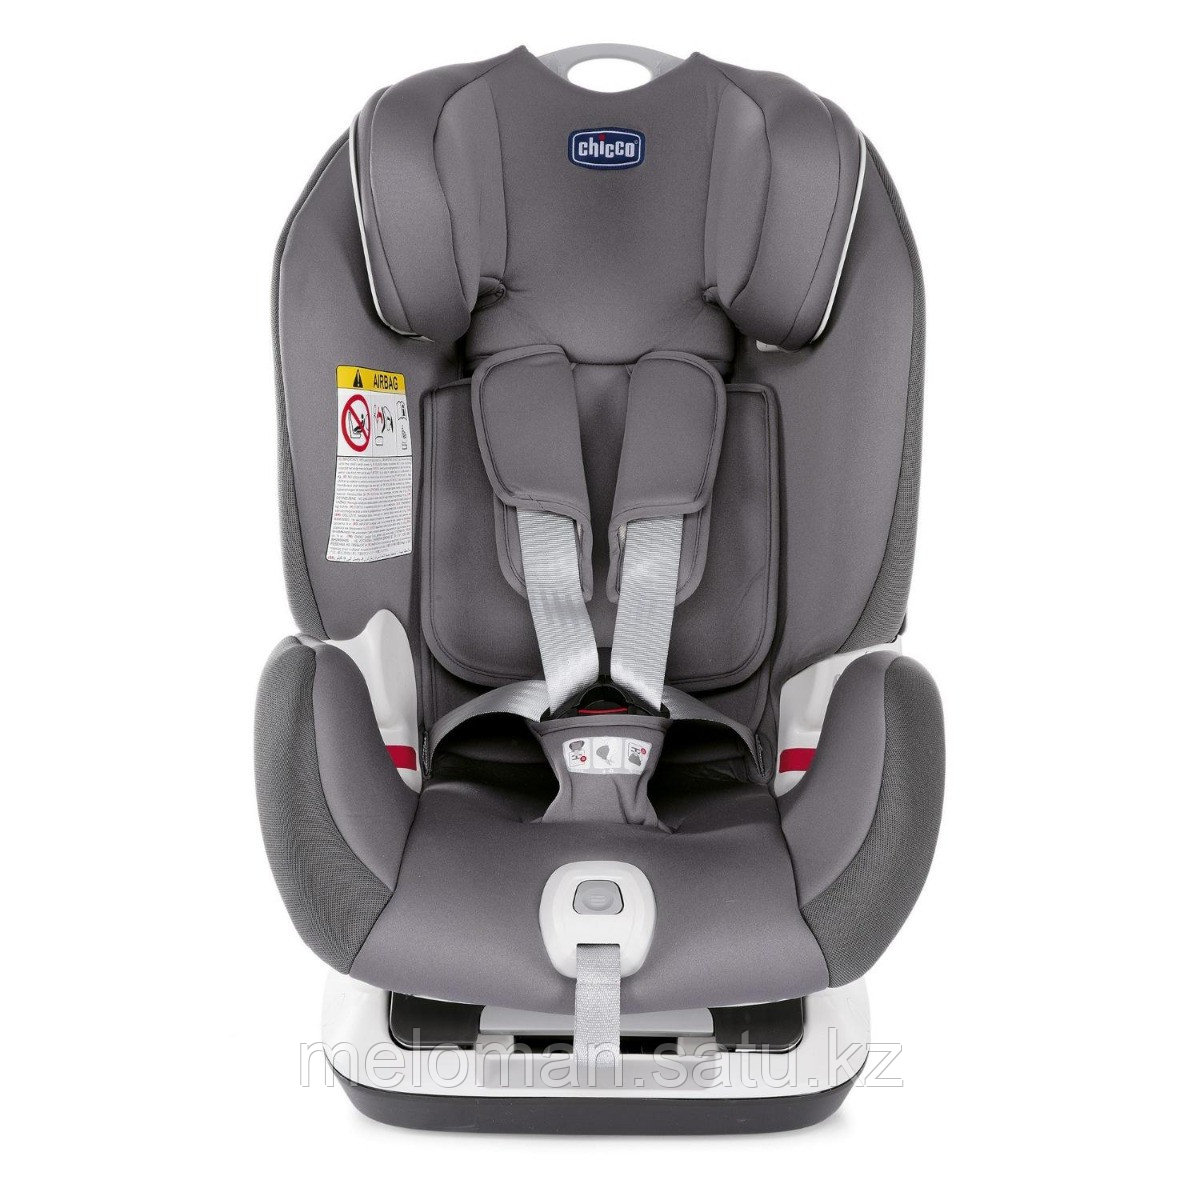 Chicco: Автокресло Seat Up 012 Pearl (0-25 kg) 0+ - фото 3